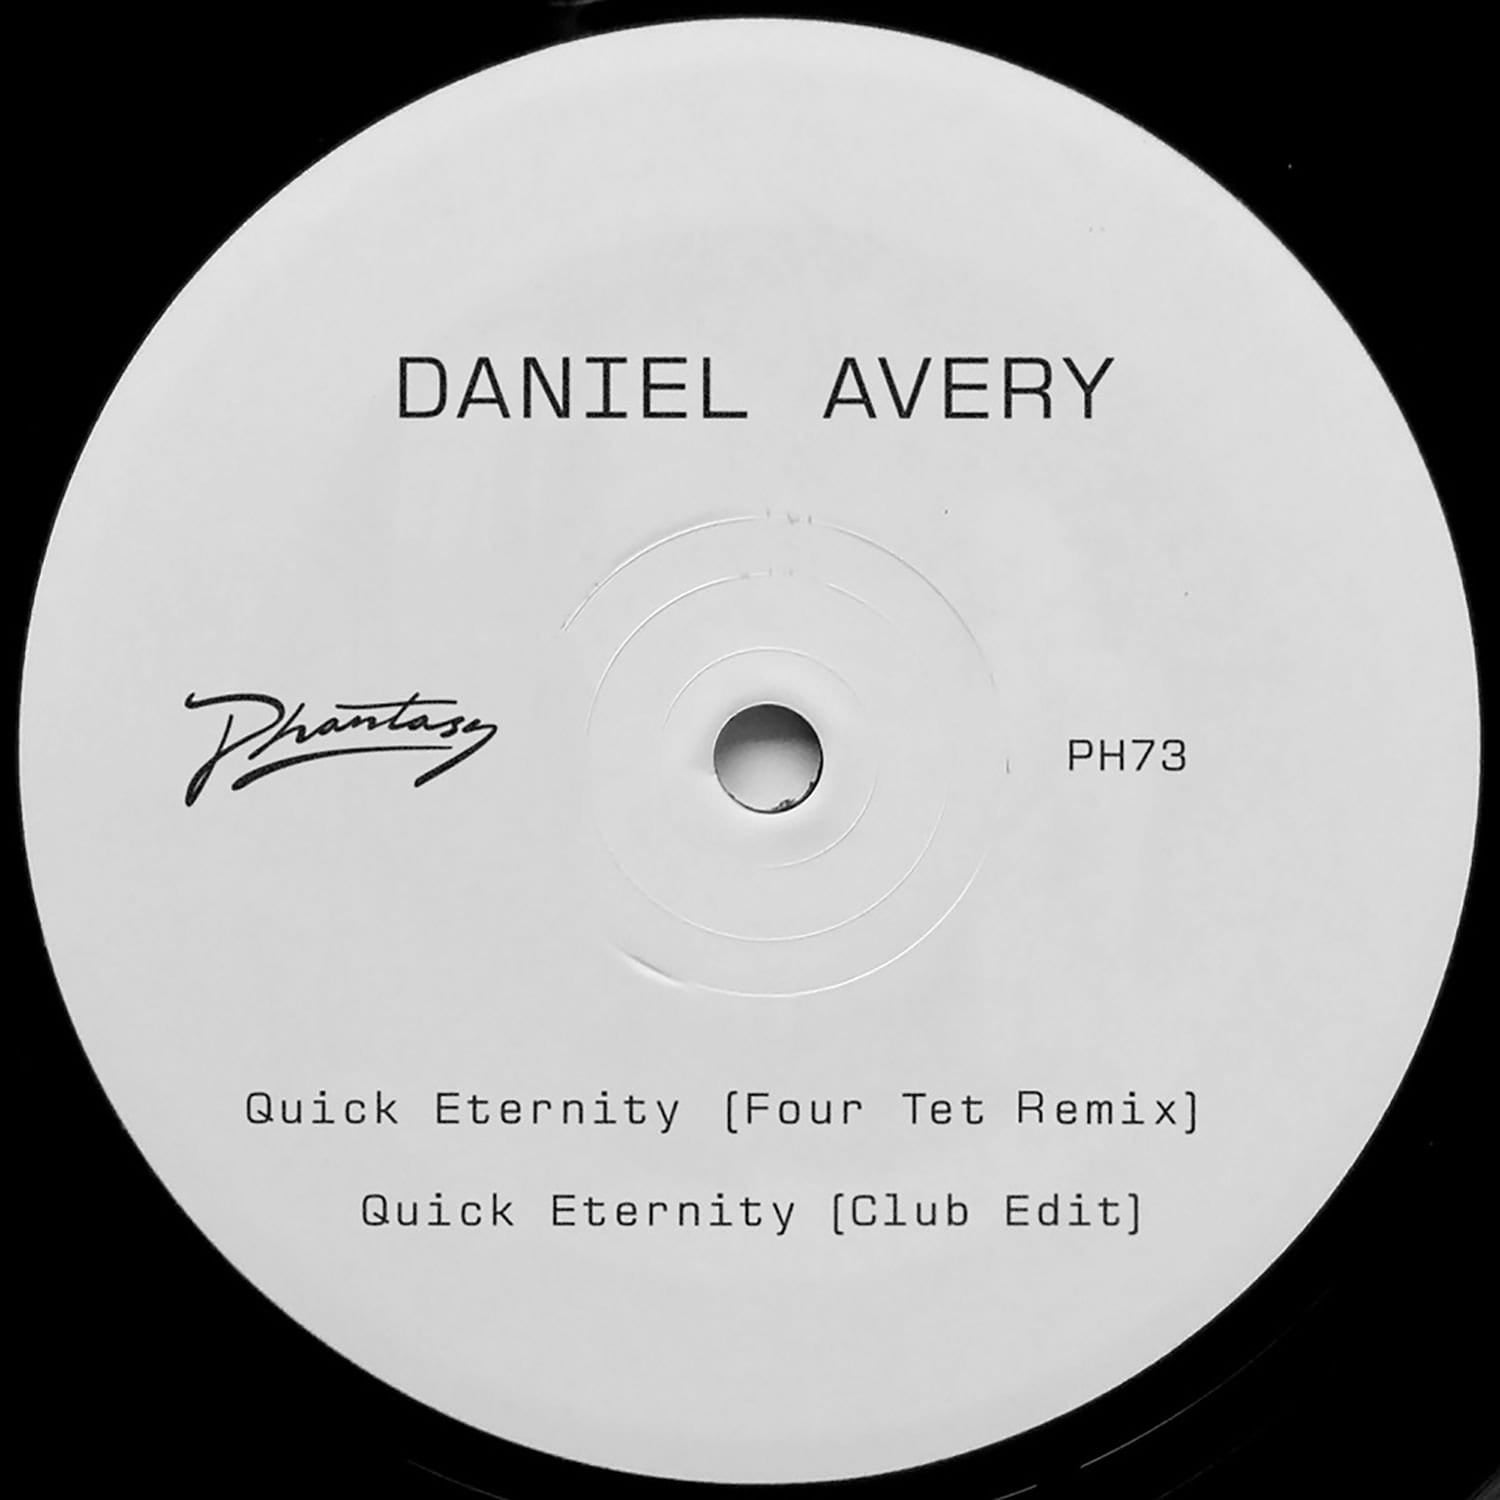 Daniel Avery - Quick Eternity [12''] (Four Tet Remix, limited to 400) (Vinyl) - Urban Vinyl | Records, Headphones, and more.